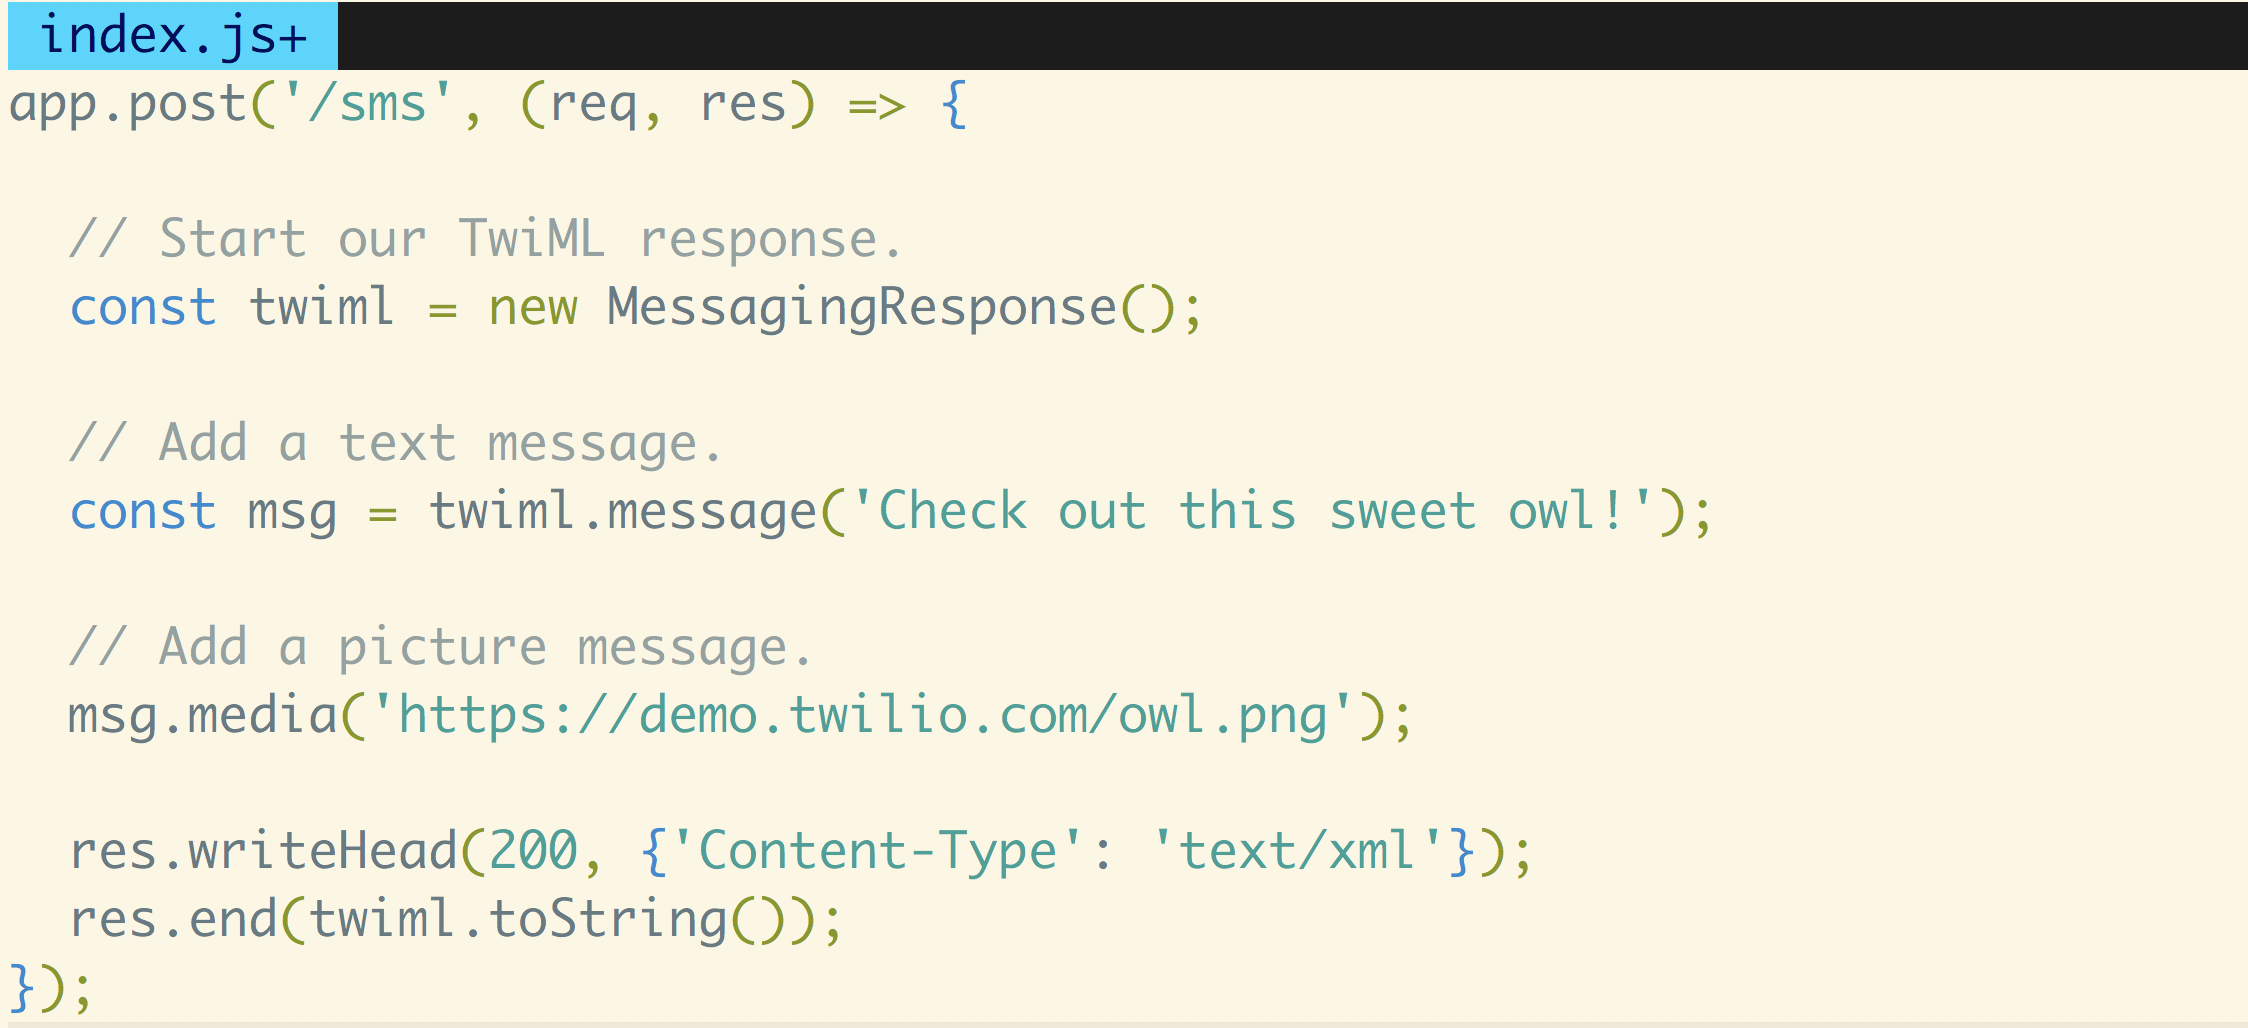 How to Receive and Respond to Text Messages with Node js